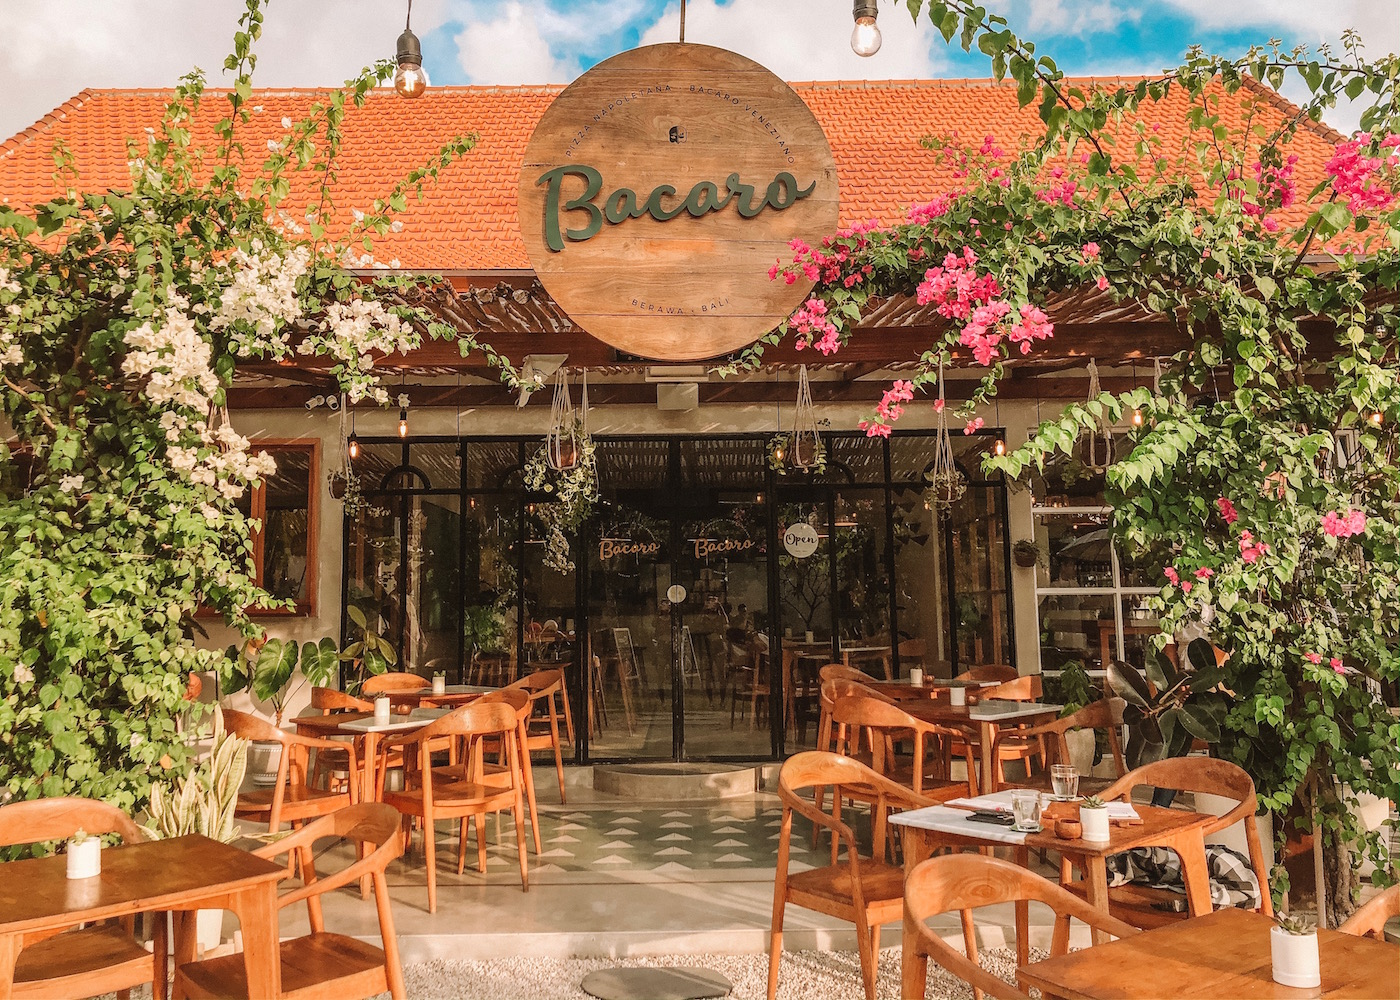 Love Italian? Head to Bacaro in Berawa for authentic Neapolitan pizza and traditional Venetian tapas